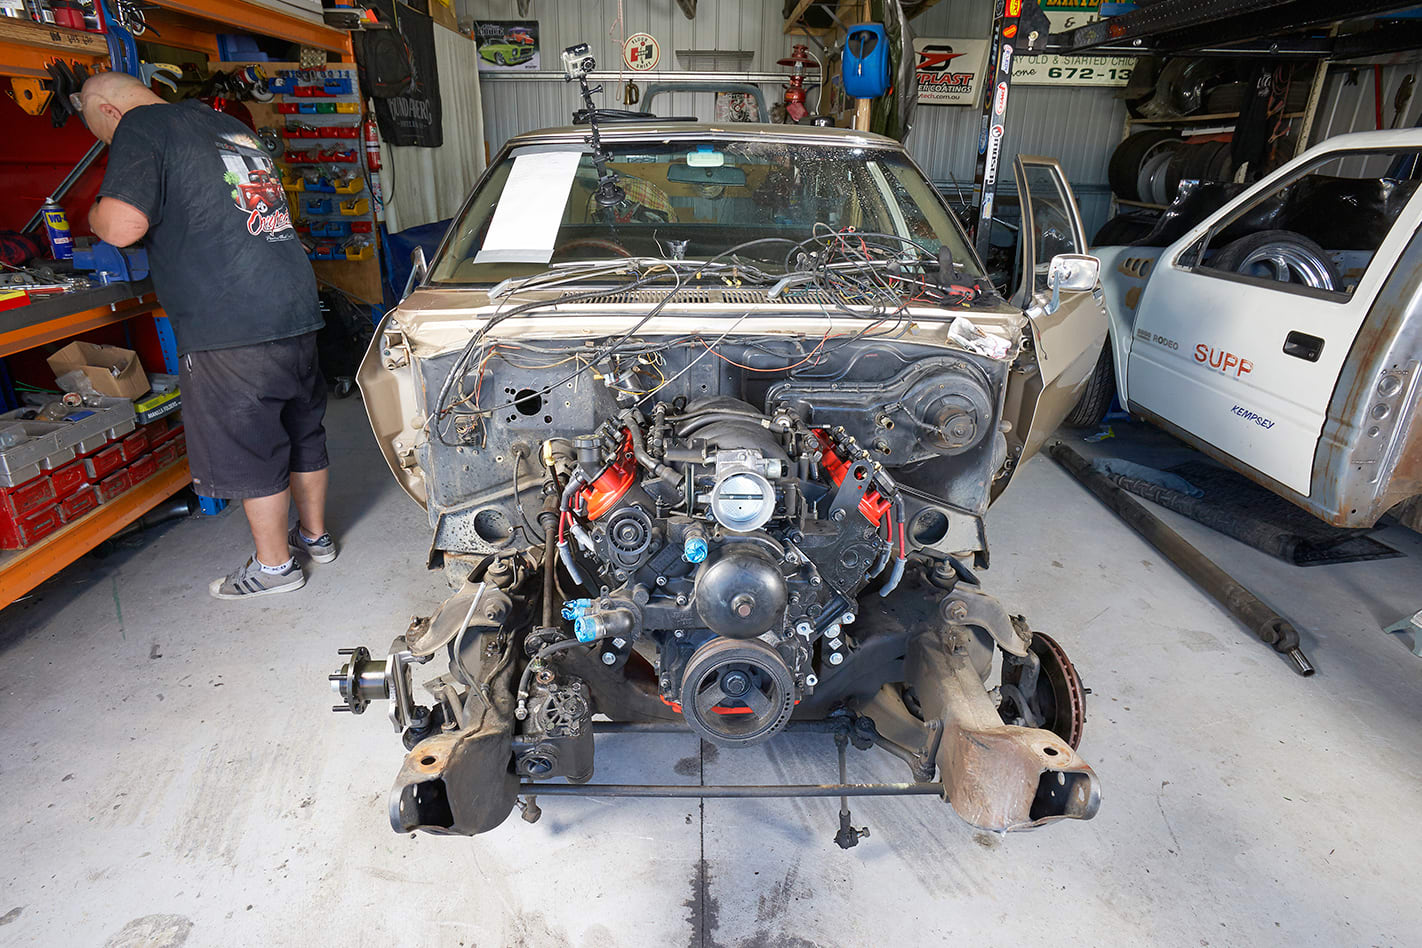 engine and transmission bolted into place